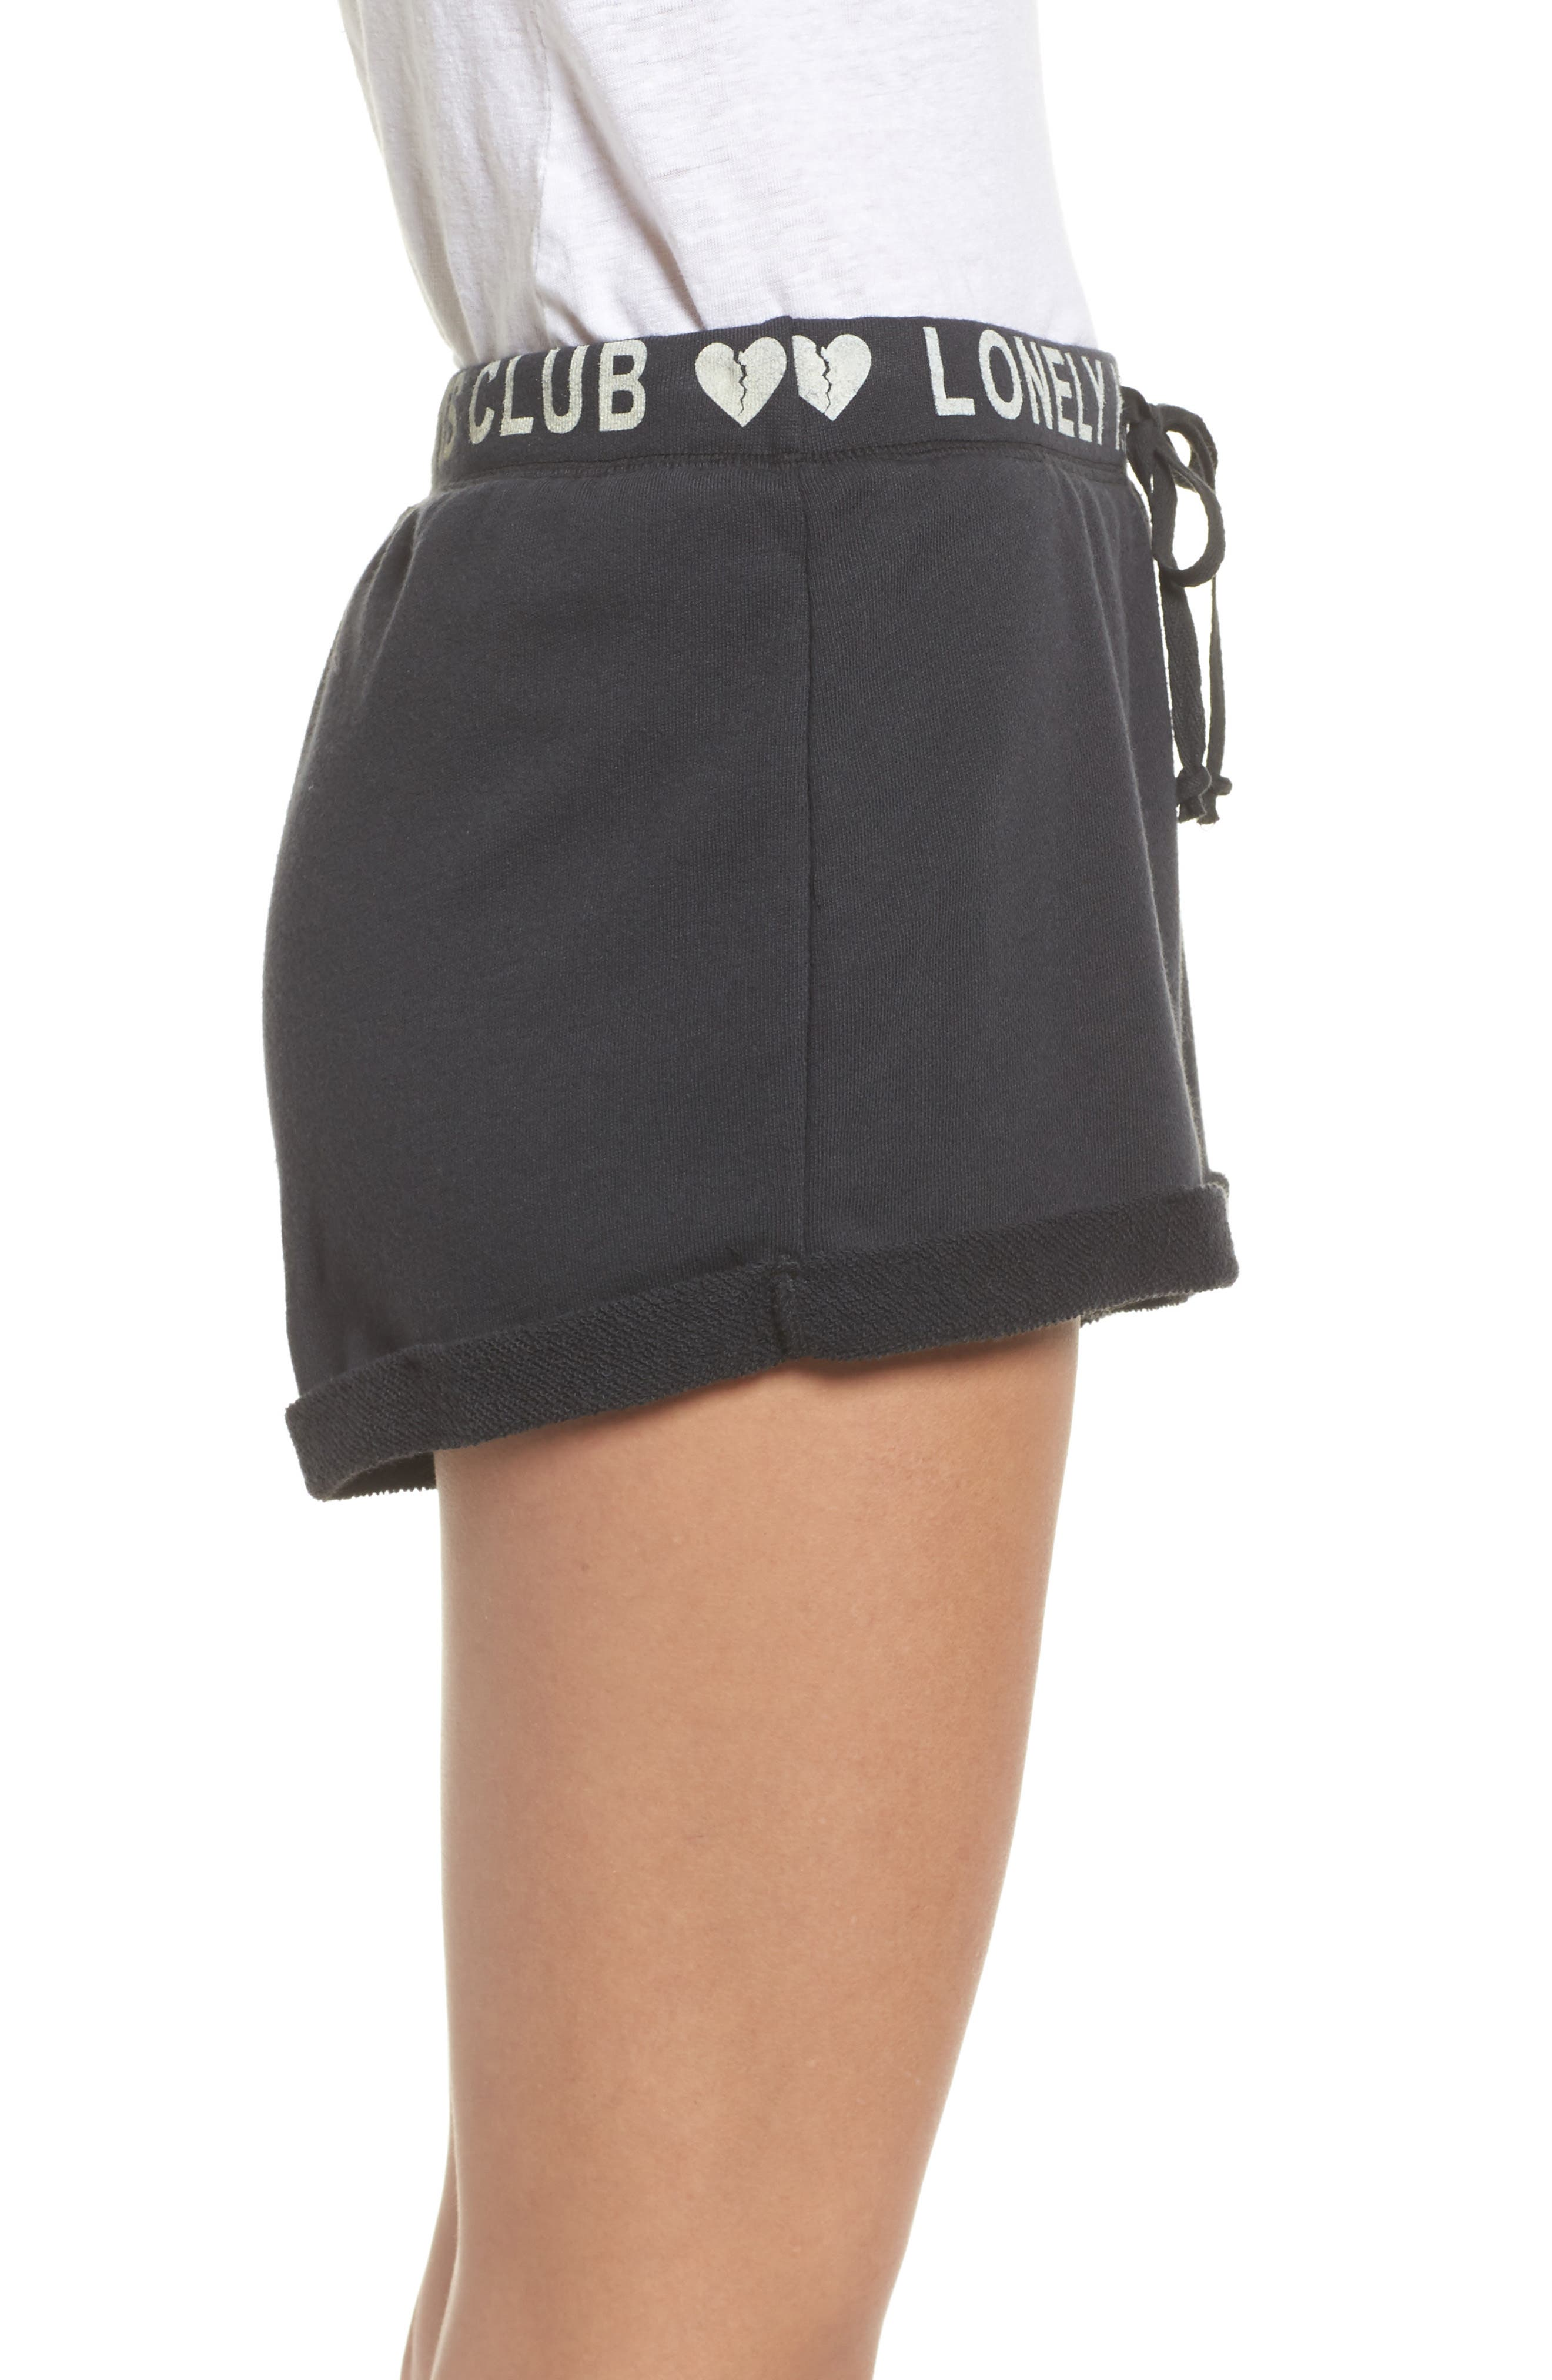 Alternate Image 3  - Junk Food Lonely Hearts Club Lounge Shorts (Nordstrom Exclusive)